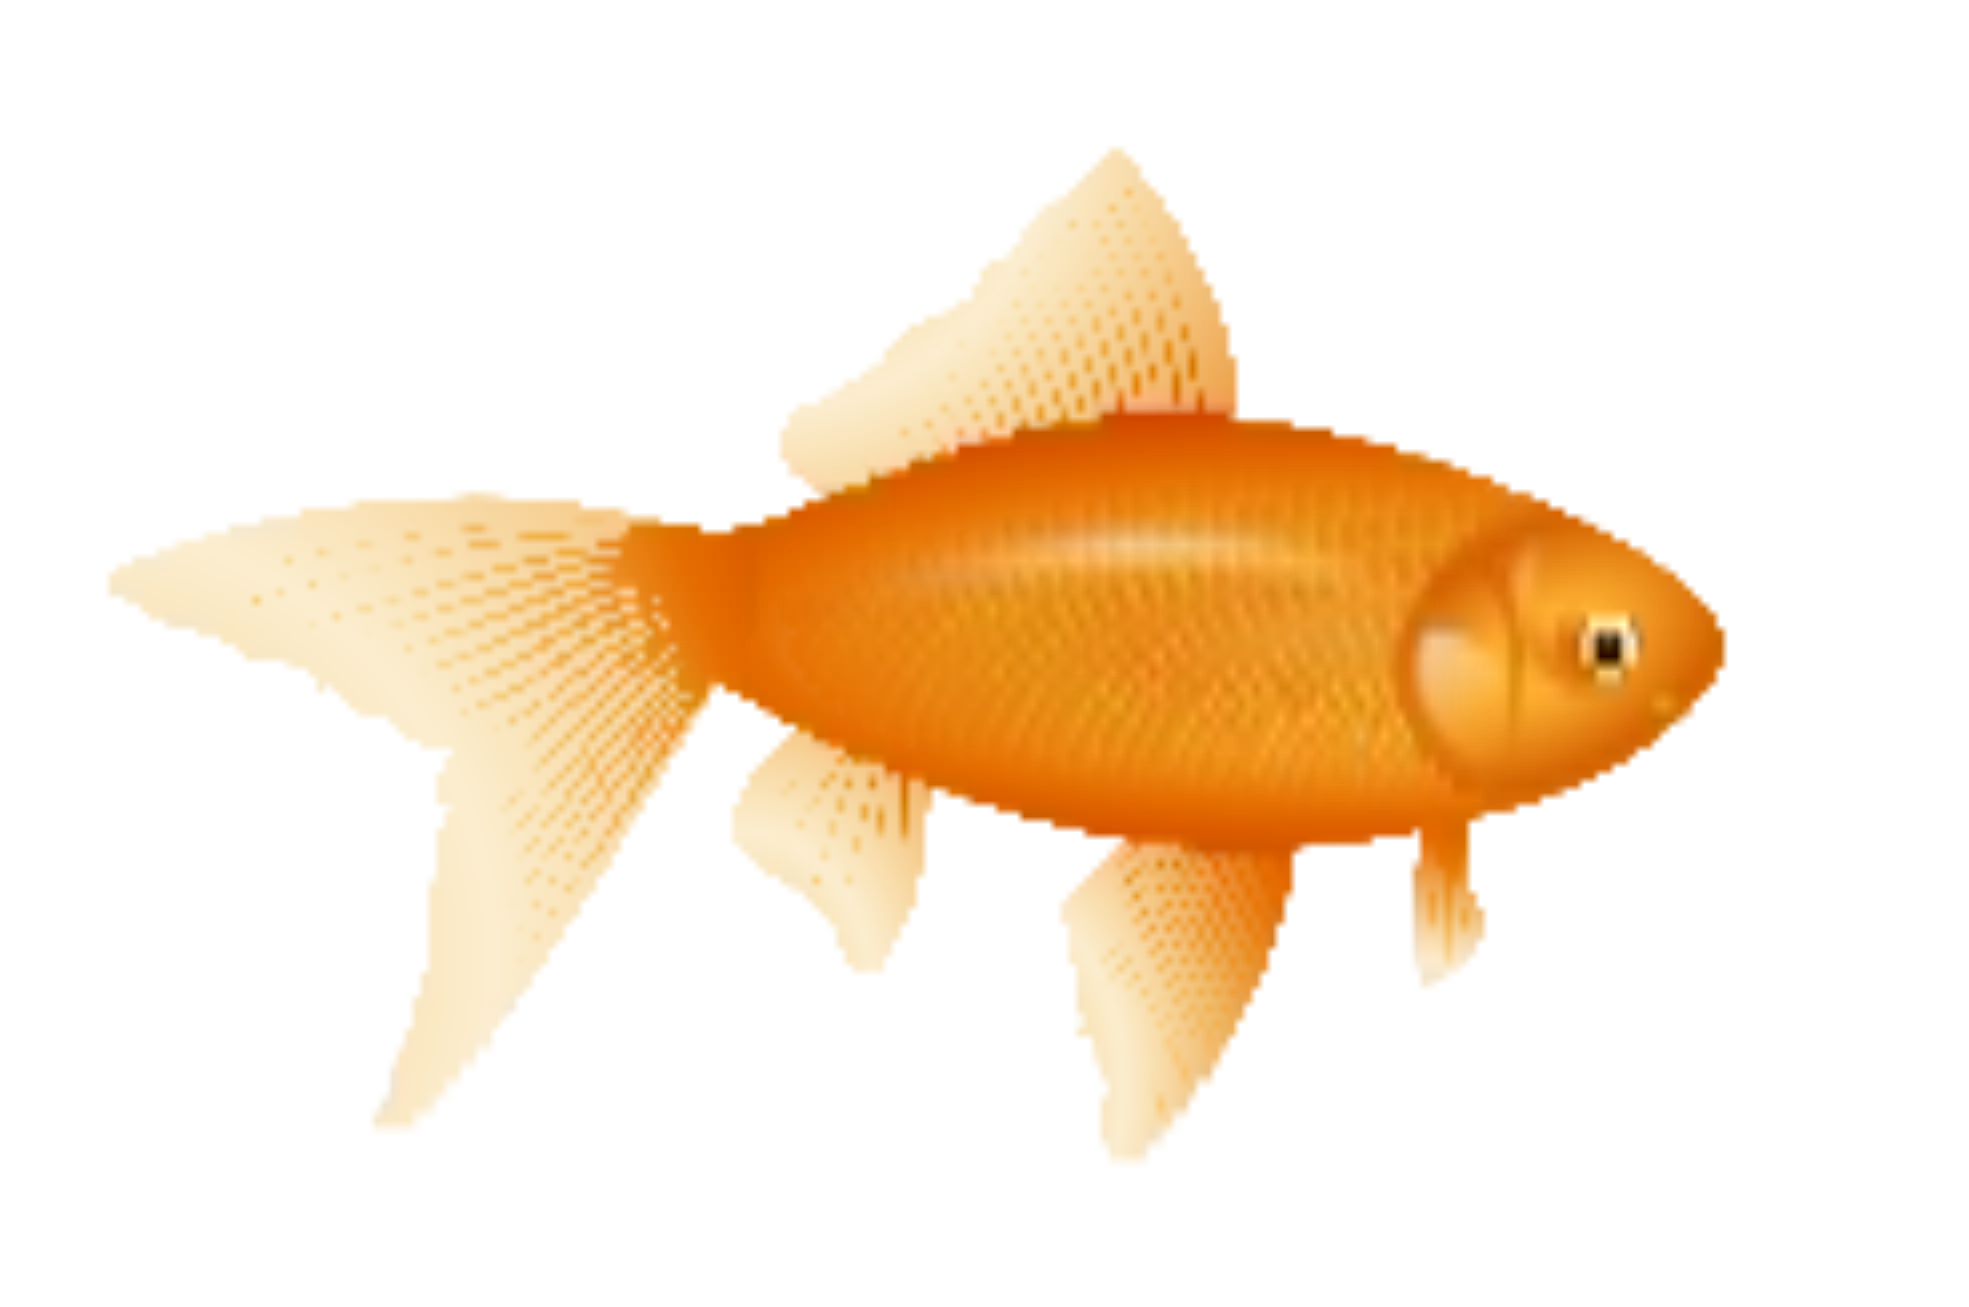 Flif example image of. Sample png files